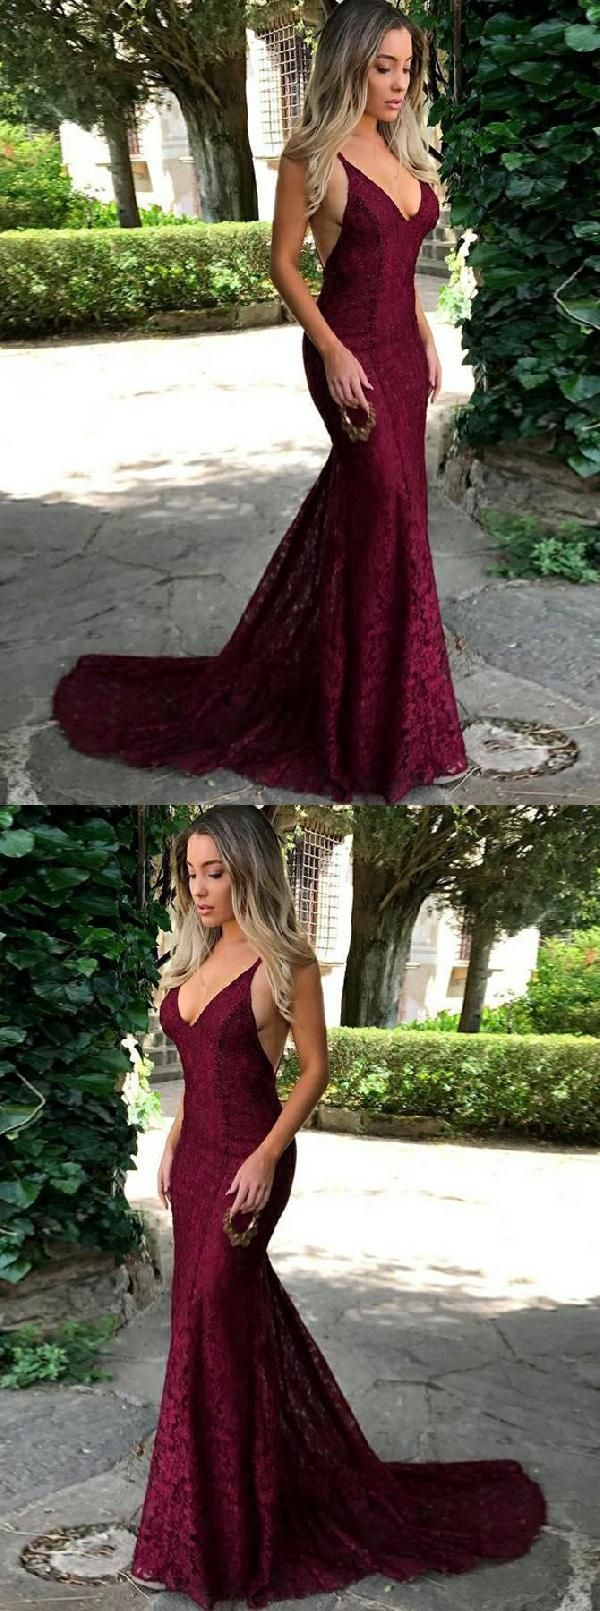 Outlet suitable backless prom dresses burgundy prom dresses lace